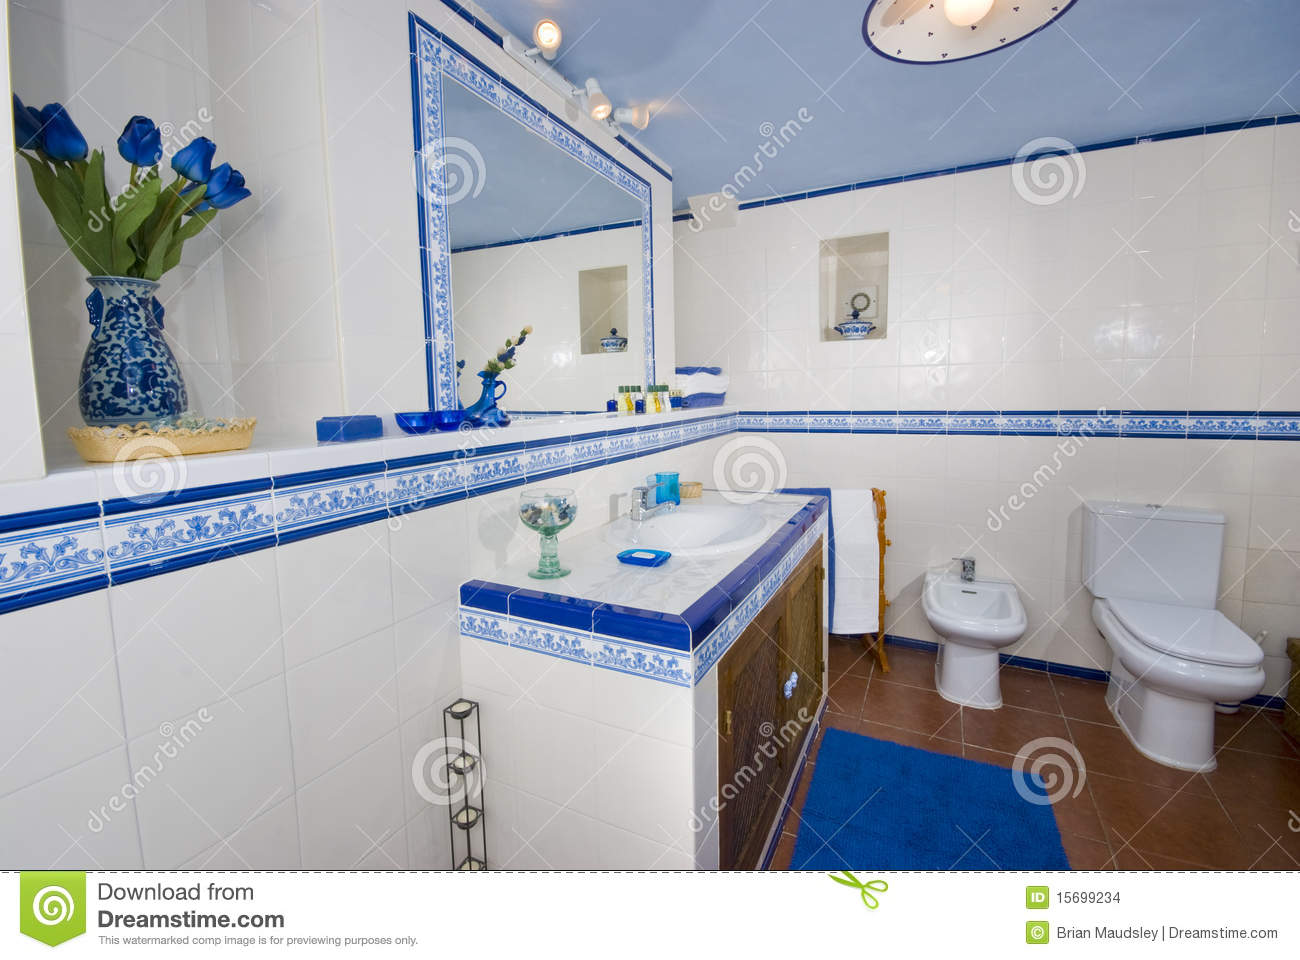 Baños Rusticos Azules:Rustic White and Blue Bathroom